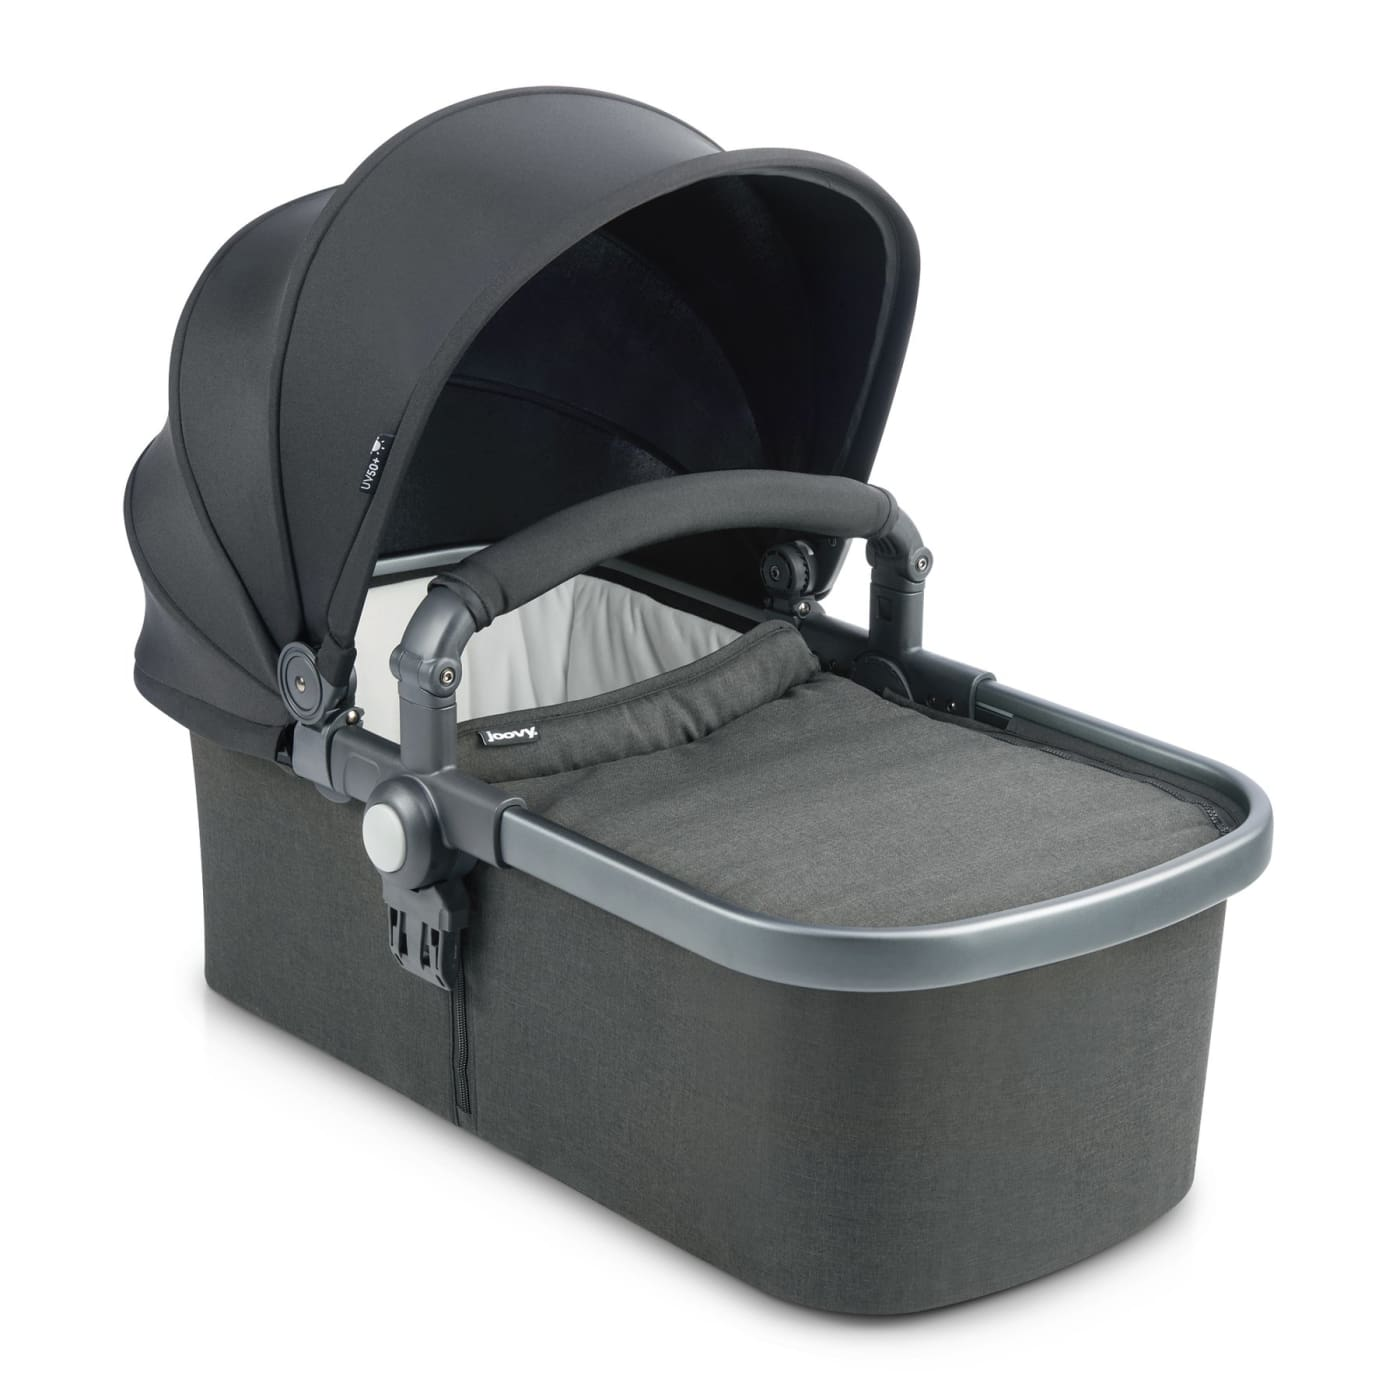 Joovy Bassinet - Black Melange - Black Melange - PRAMS & STROLLERS - BASS/CARRY COTS/STANDS